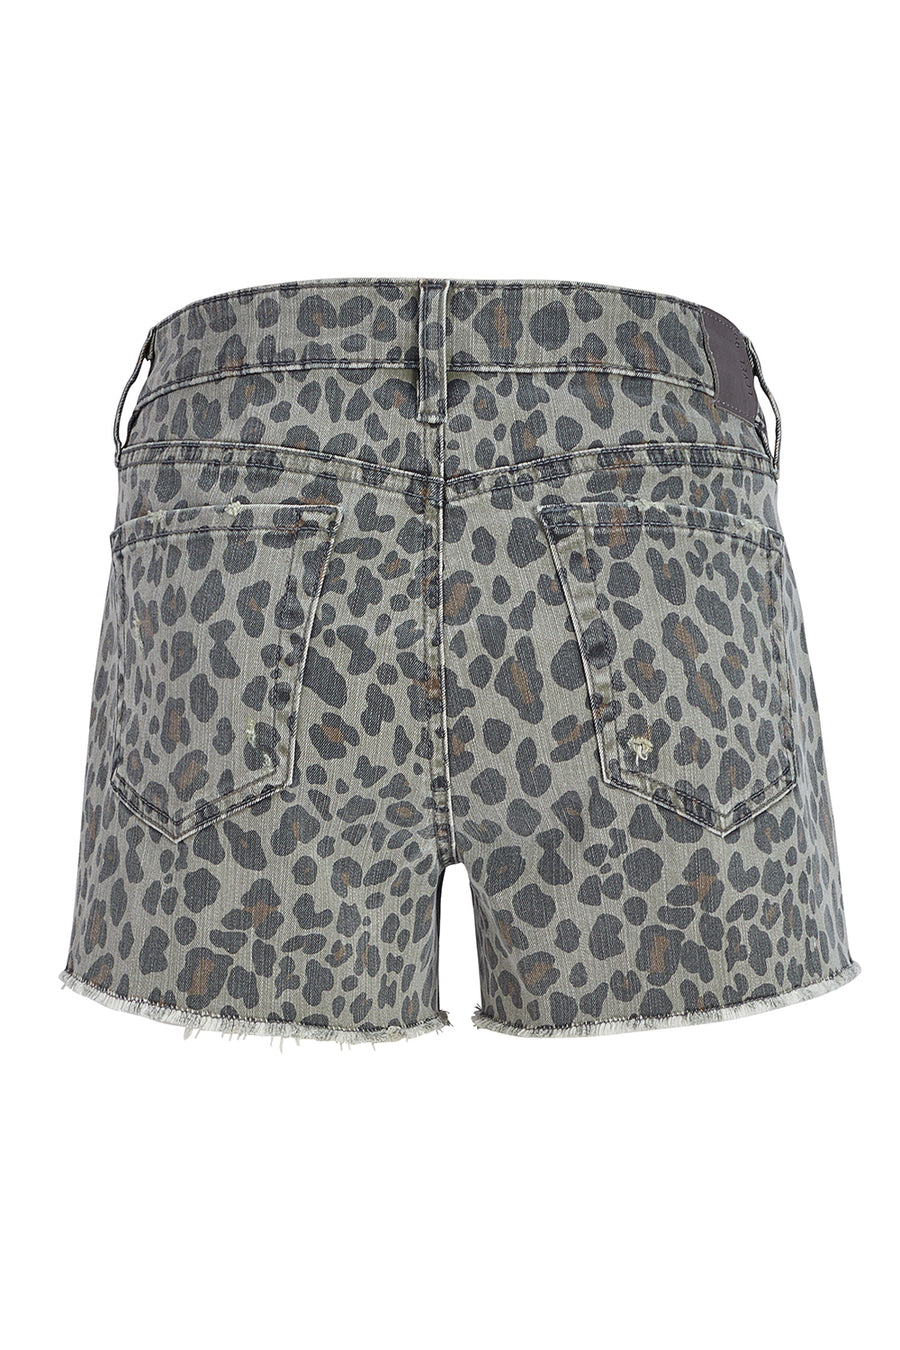 Chelsea Leopard Short - level99jeans